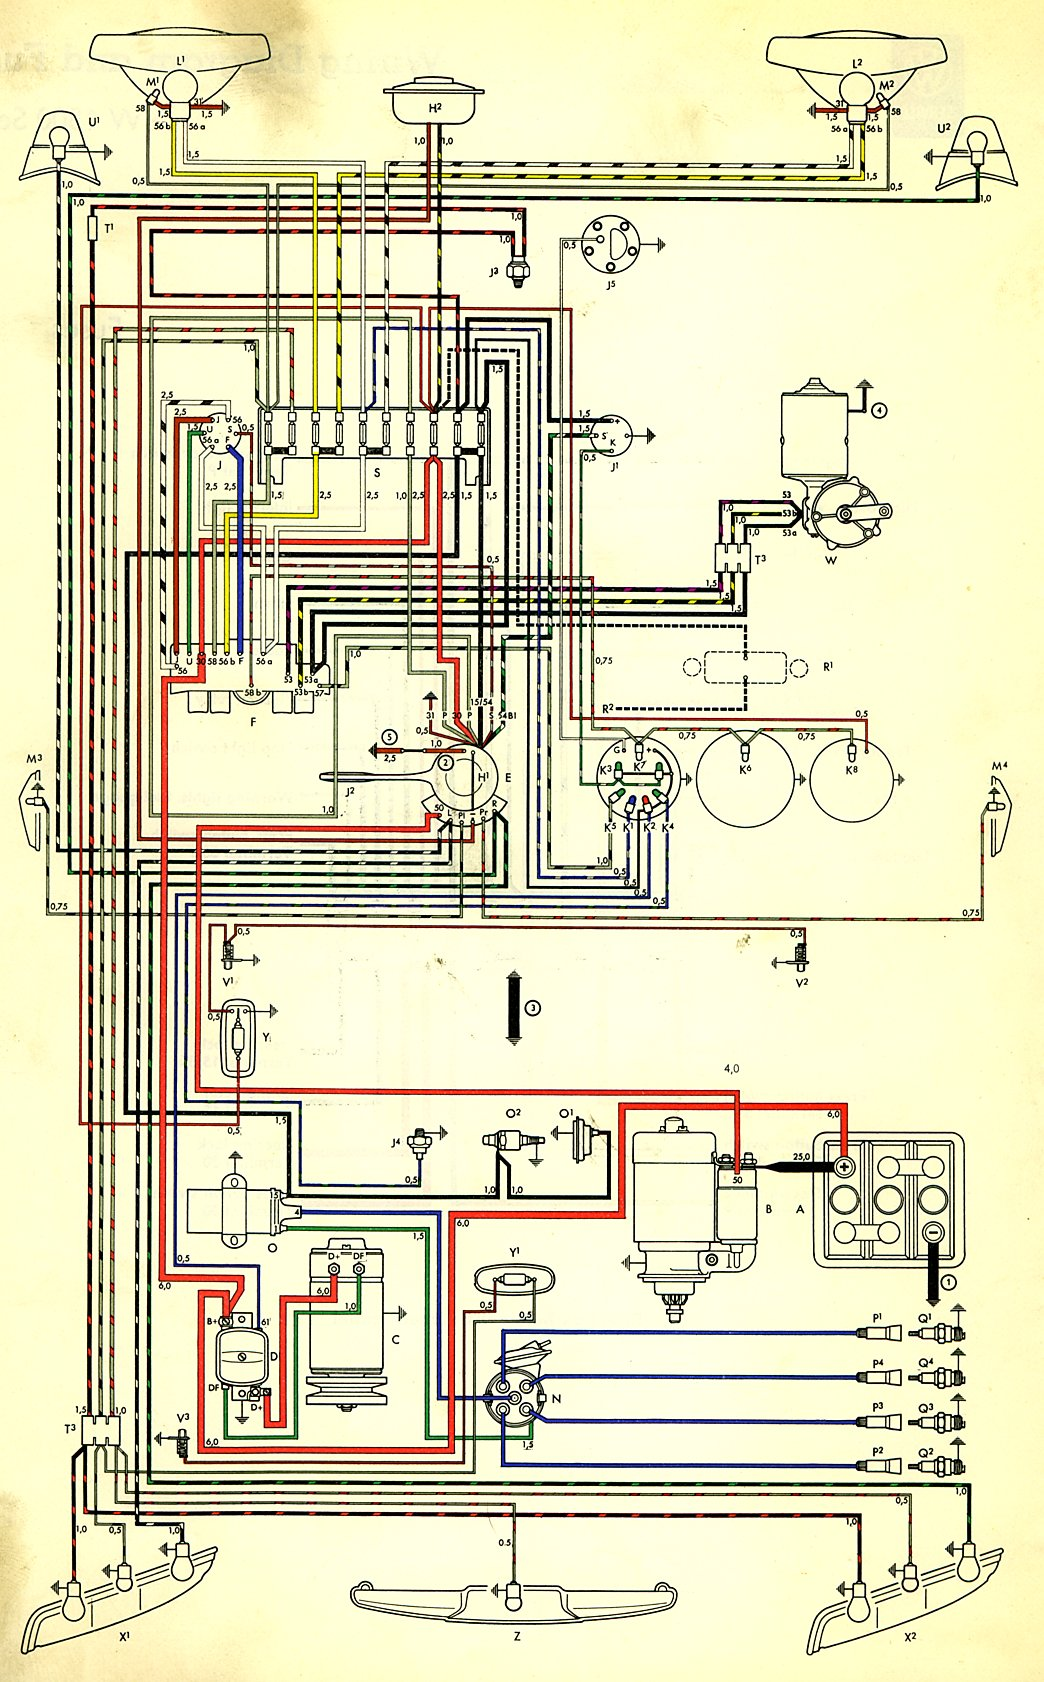 Vw Bug Wire Harness Wiring Library Electrical Bus Plug Diagram Thesamba Com Type 3 Diagrams Rh 1969 1973